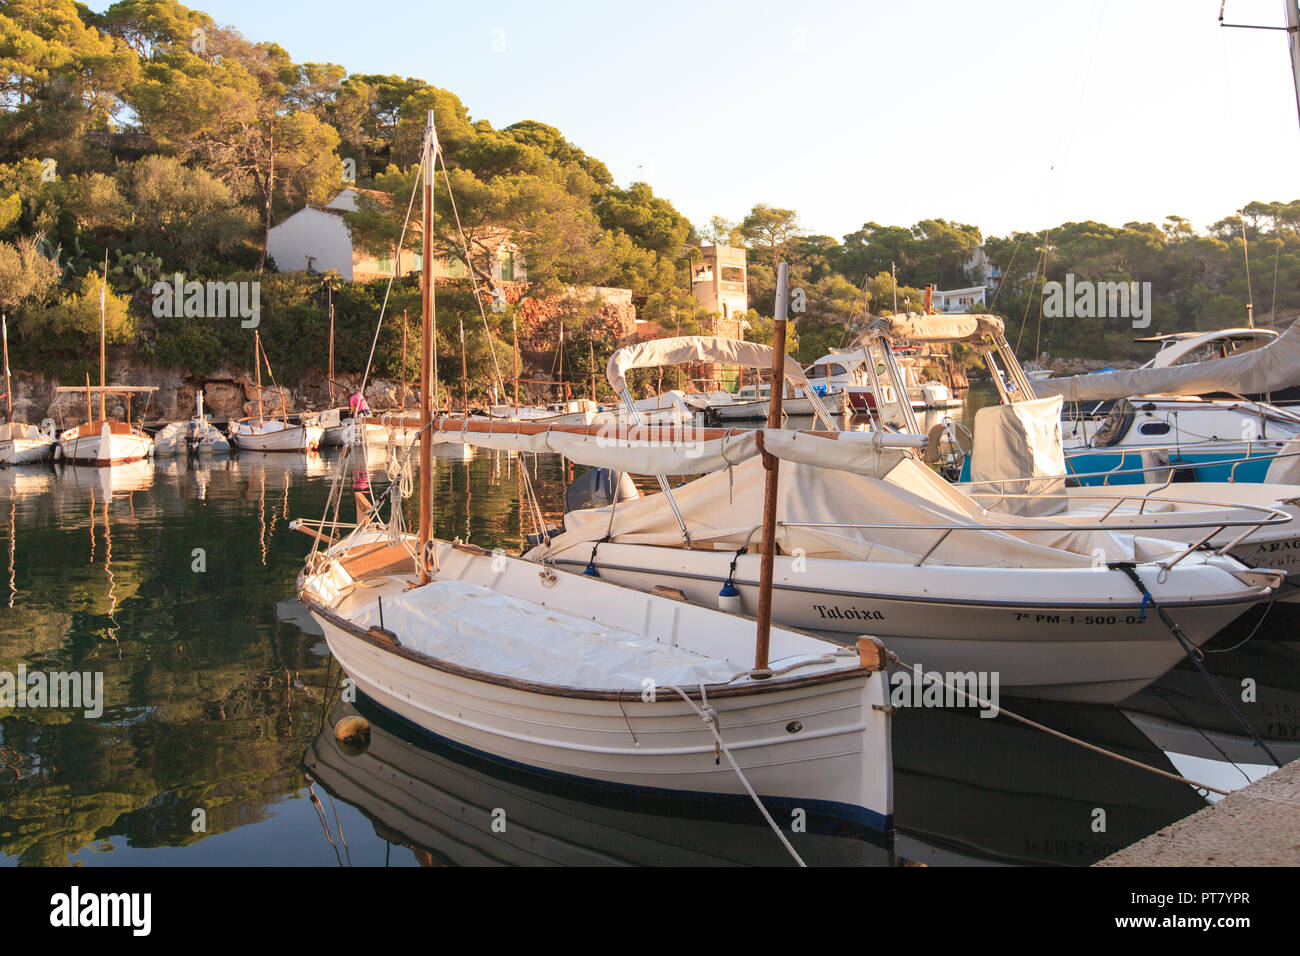 Early in the morning in the port of Cala Figuera, Santanyi, Europe, Spain, Mallorca, Cala Figuera, Santanyi, Balearic Islands, Spain, Mediterranean Se - Stock Image